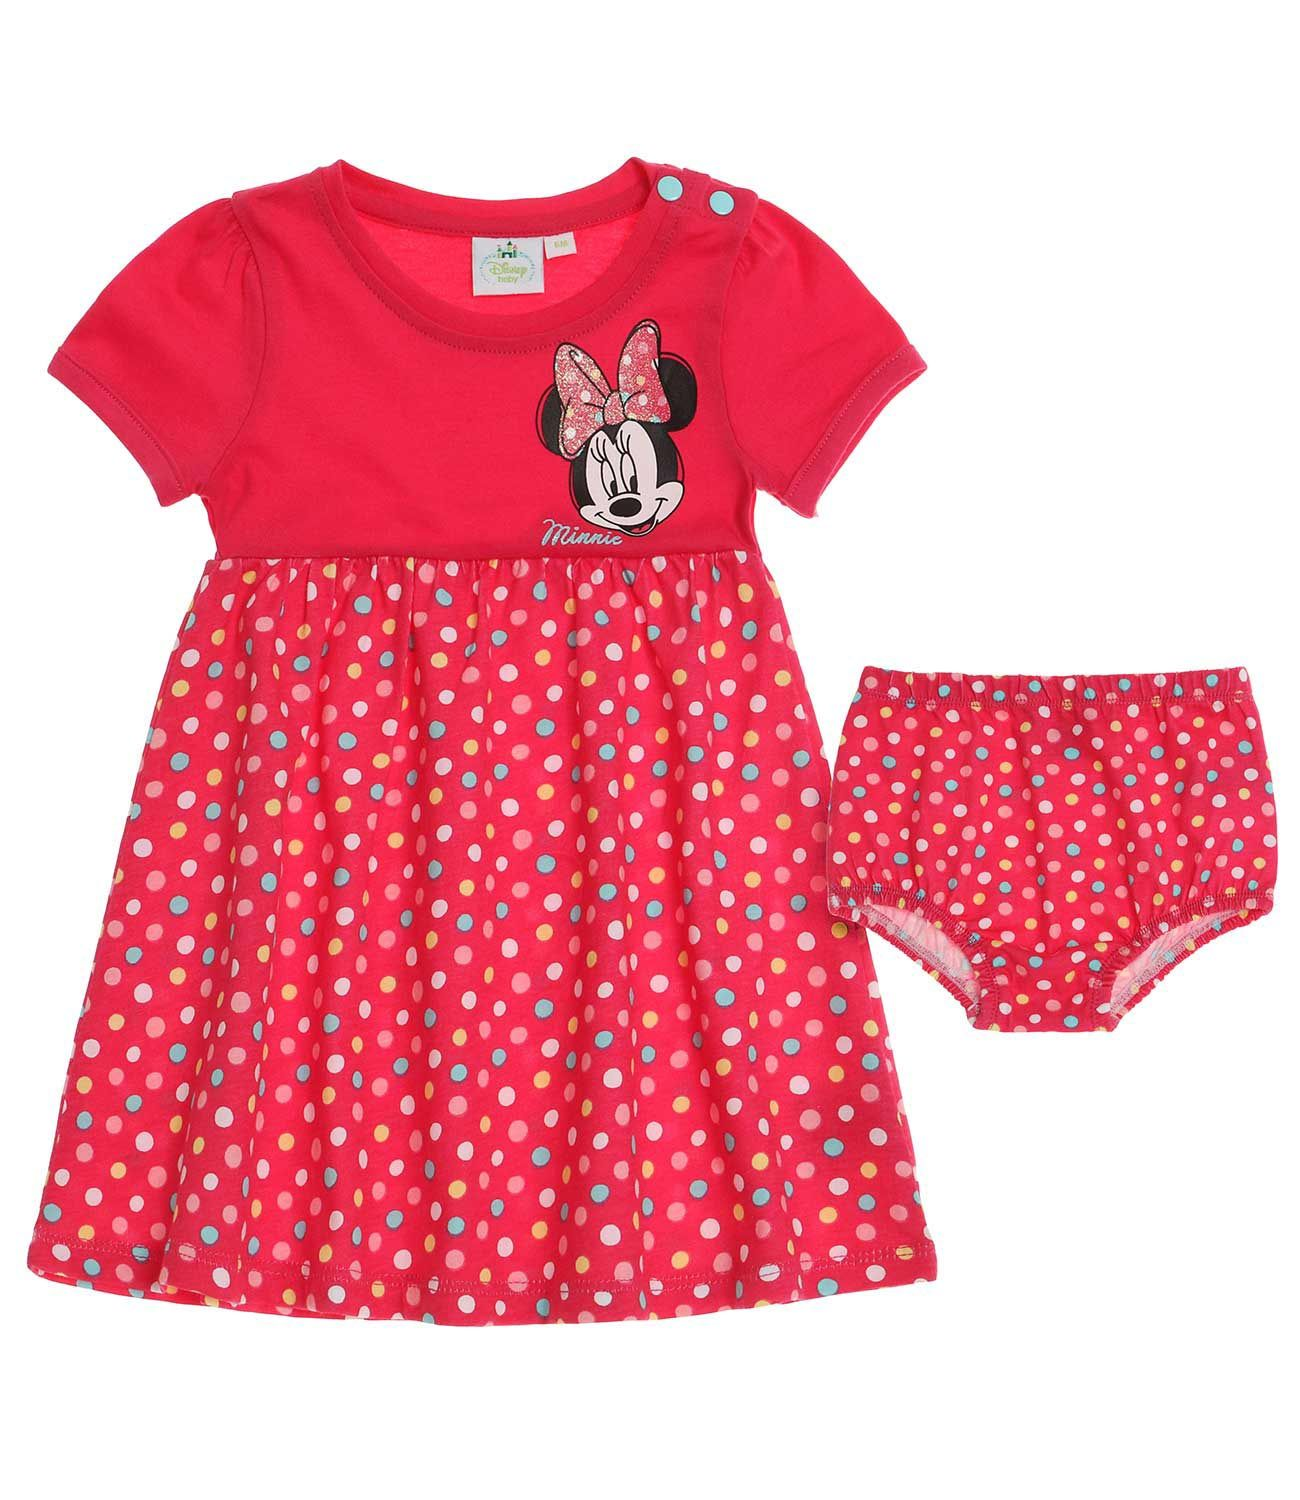 Baby GIRL šaty Minnie Mouse